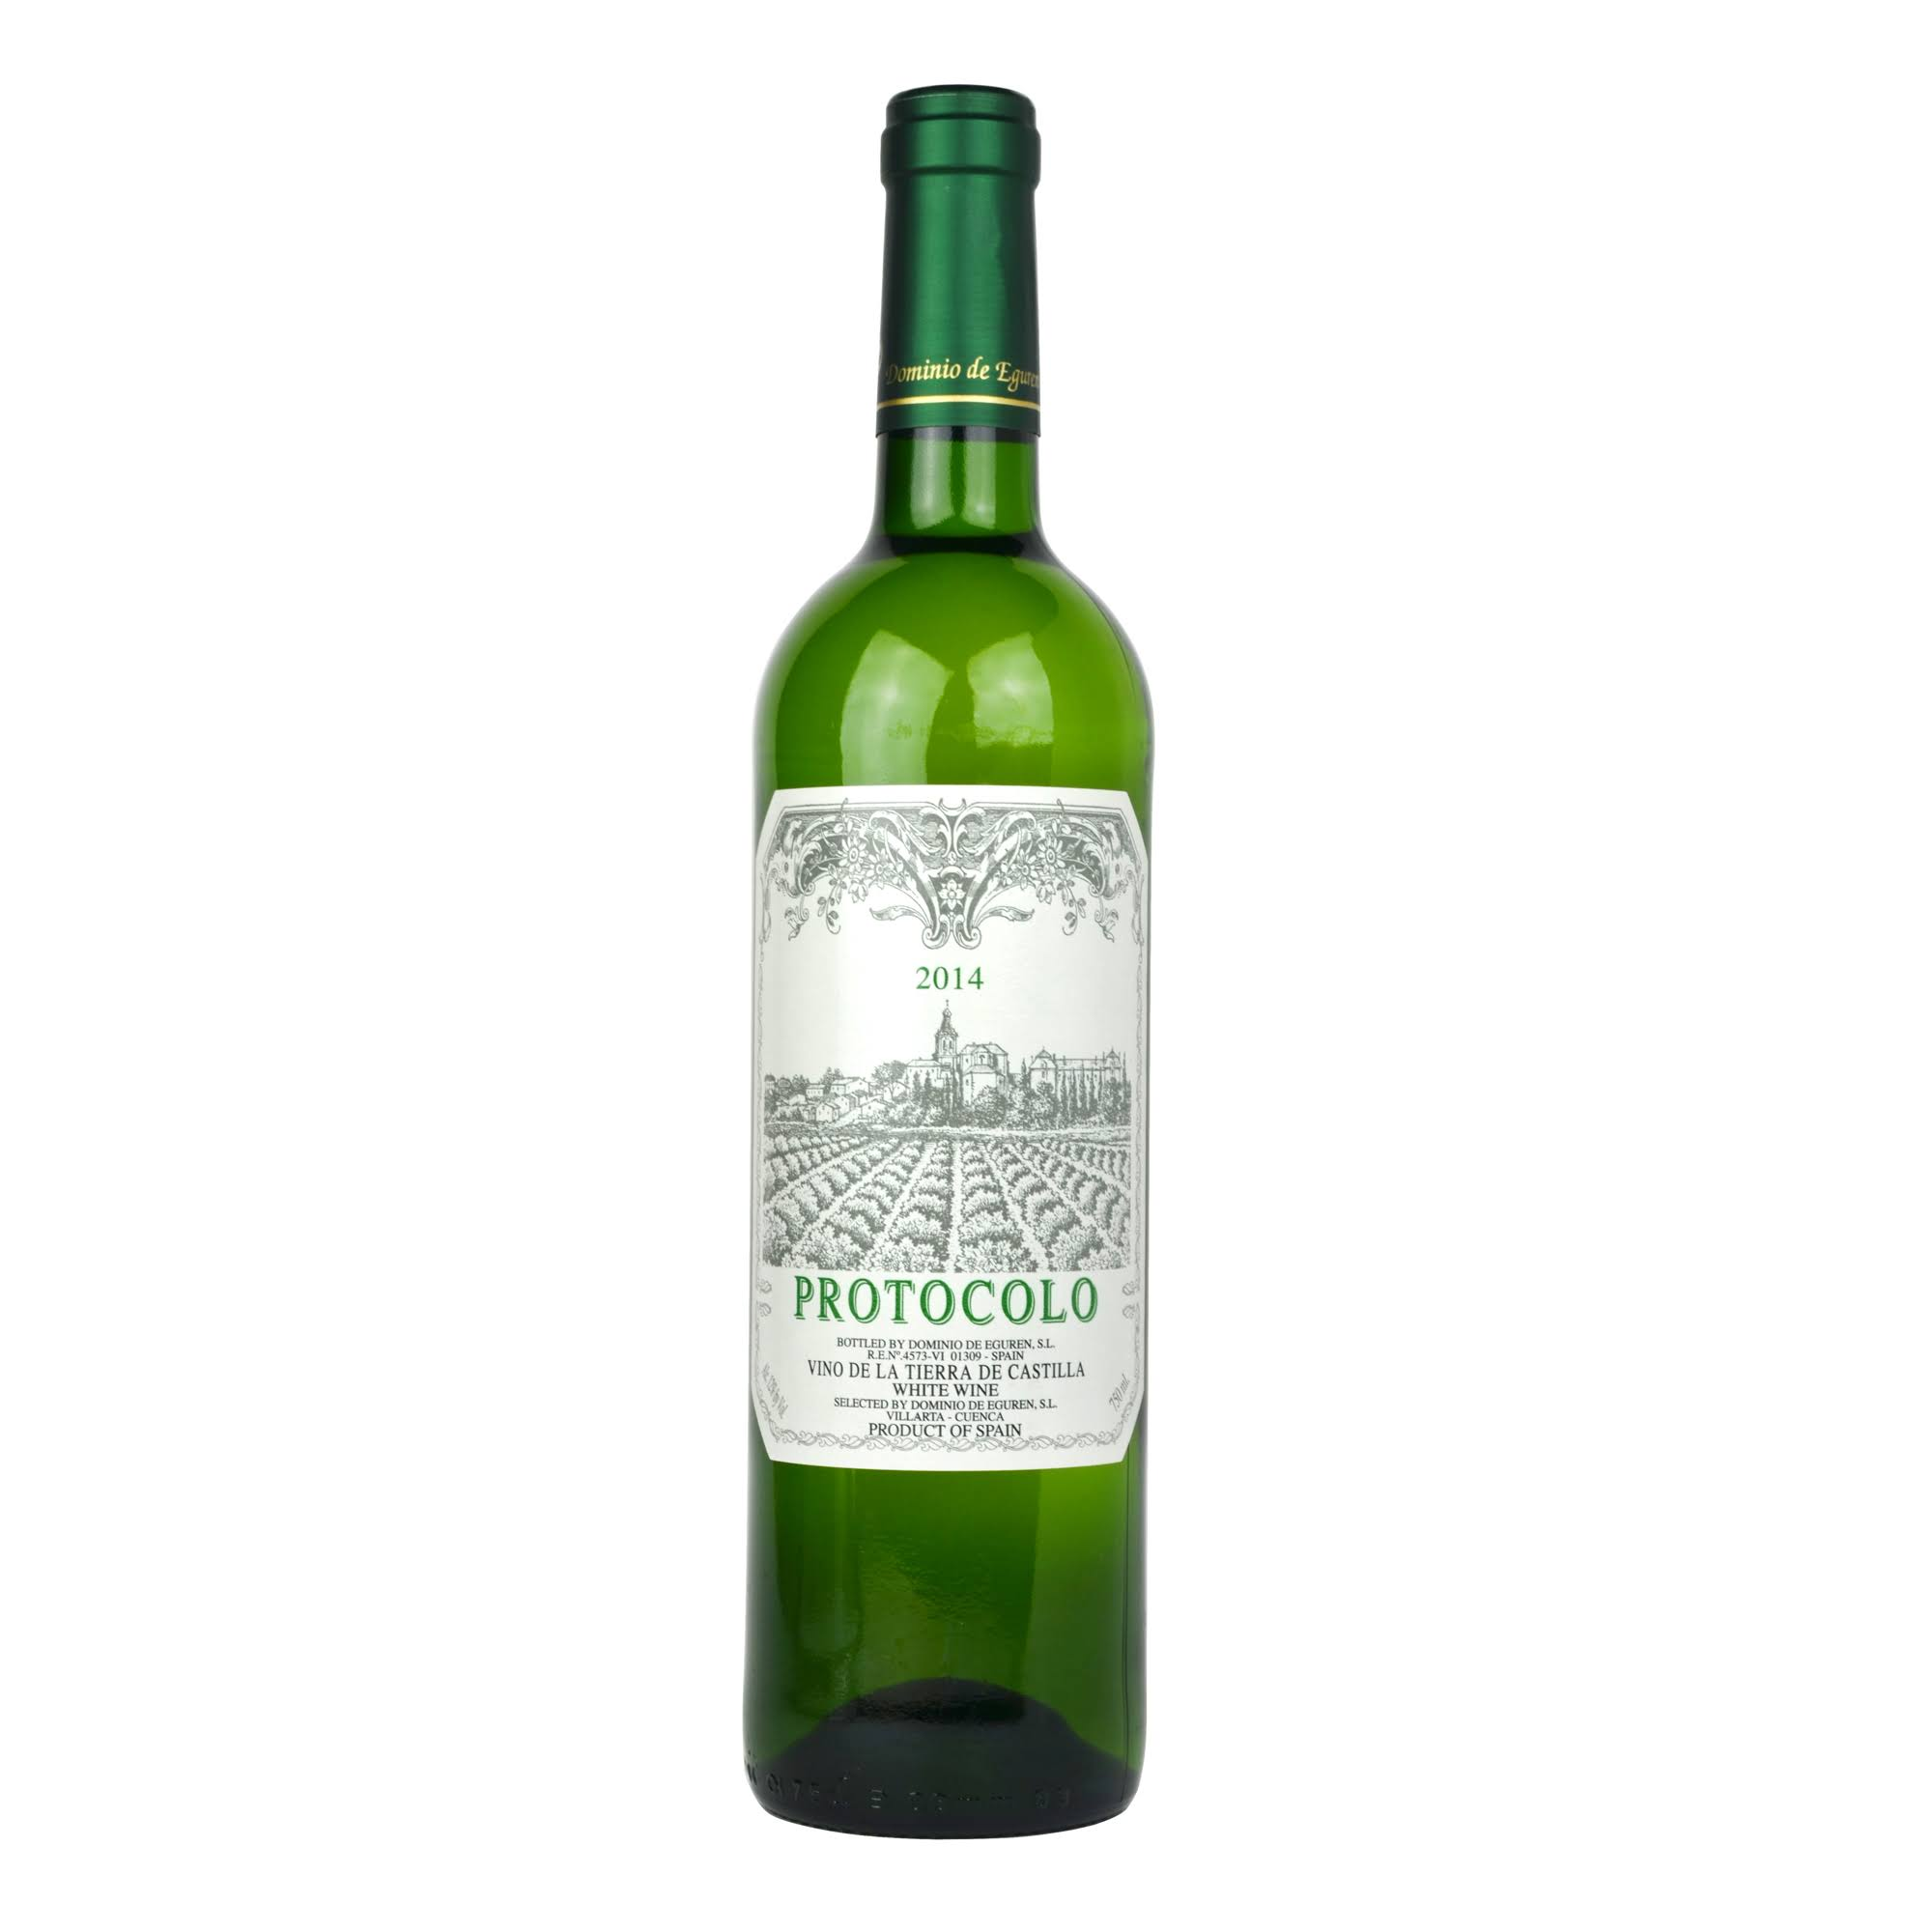 Protocolo Blanco 2016 White Wine from Spain - 750ml